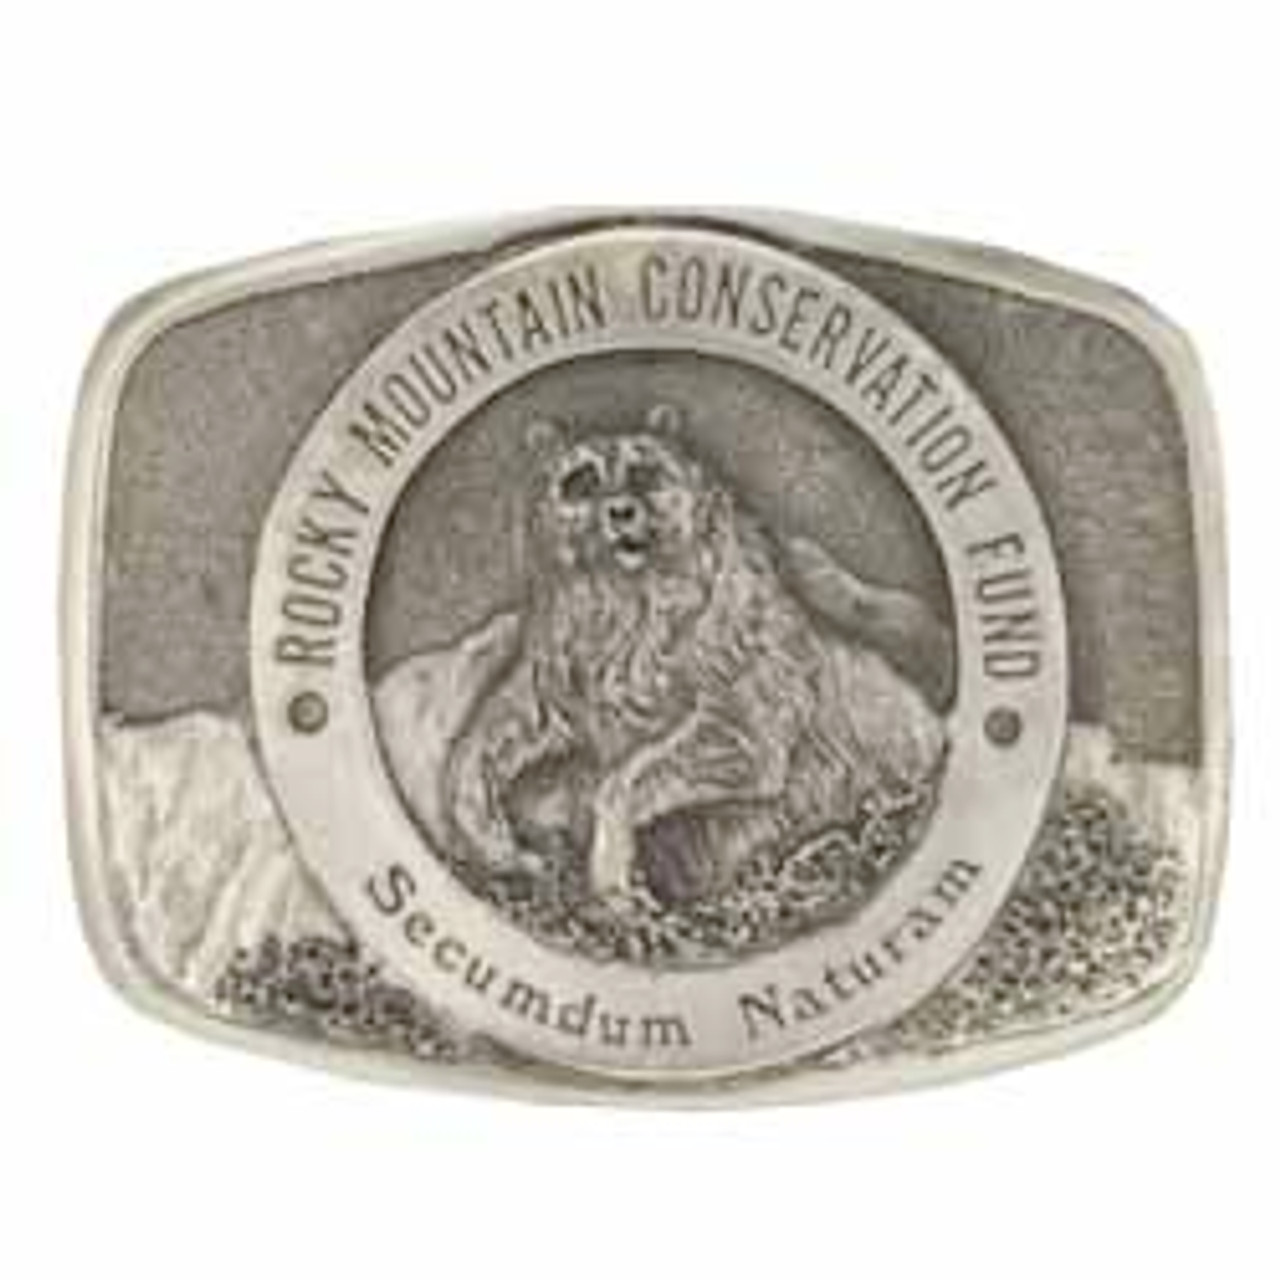 Rocky Mountain Conservation Fund Buckle